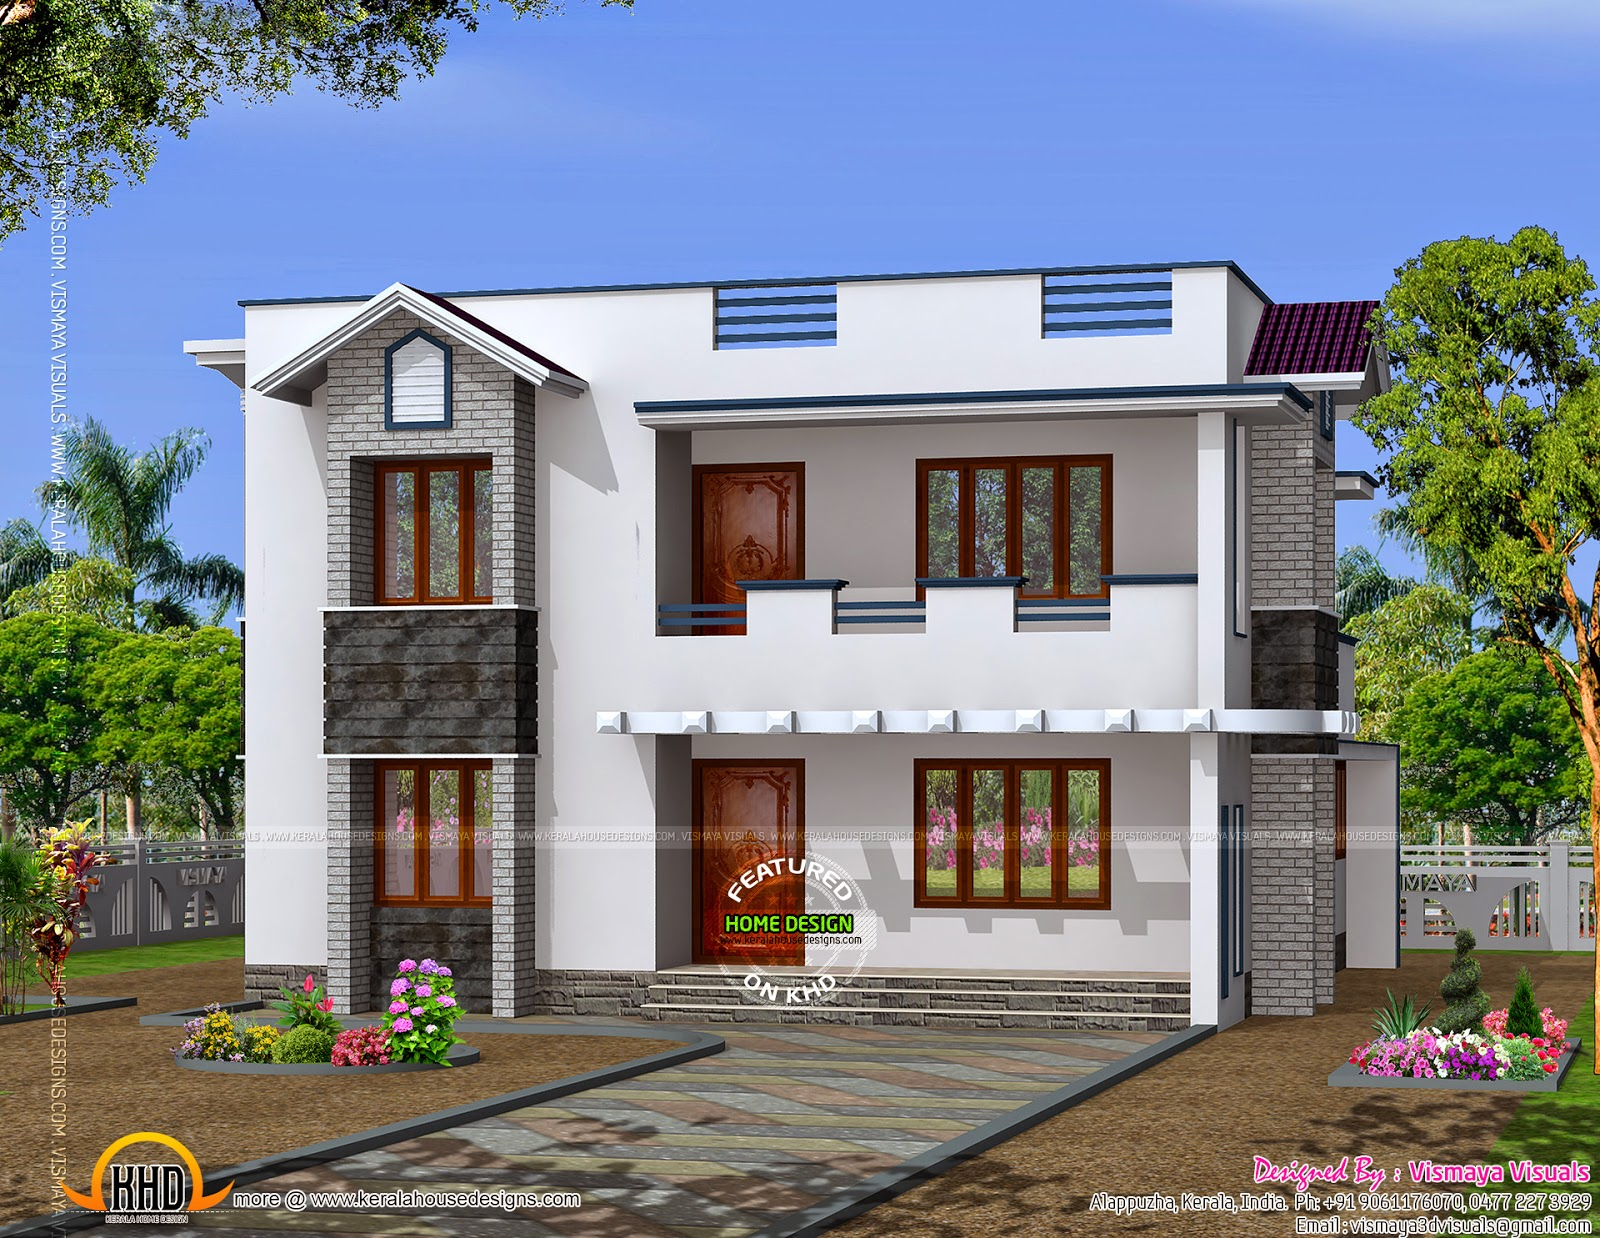 Simple design home kerala home design and floor plans for Basic house design